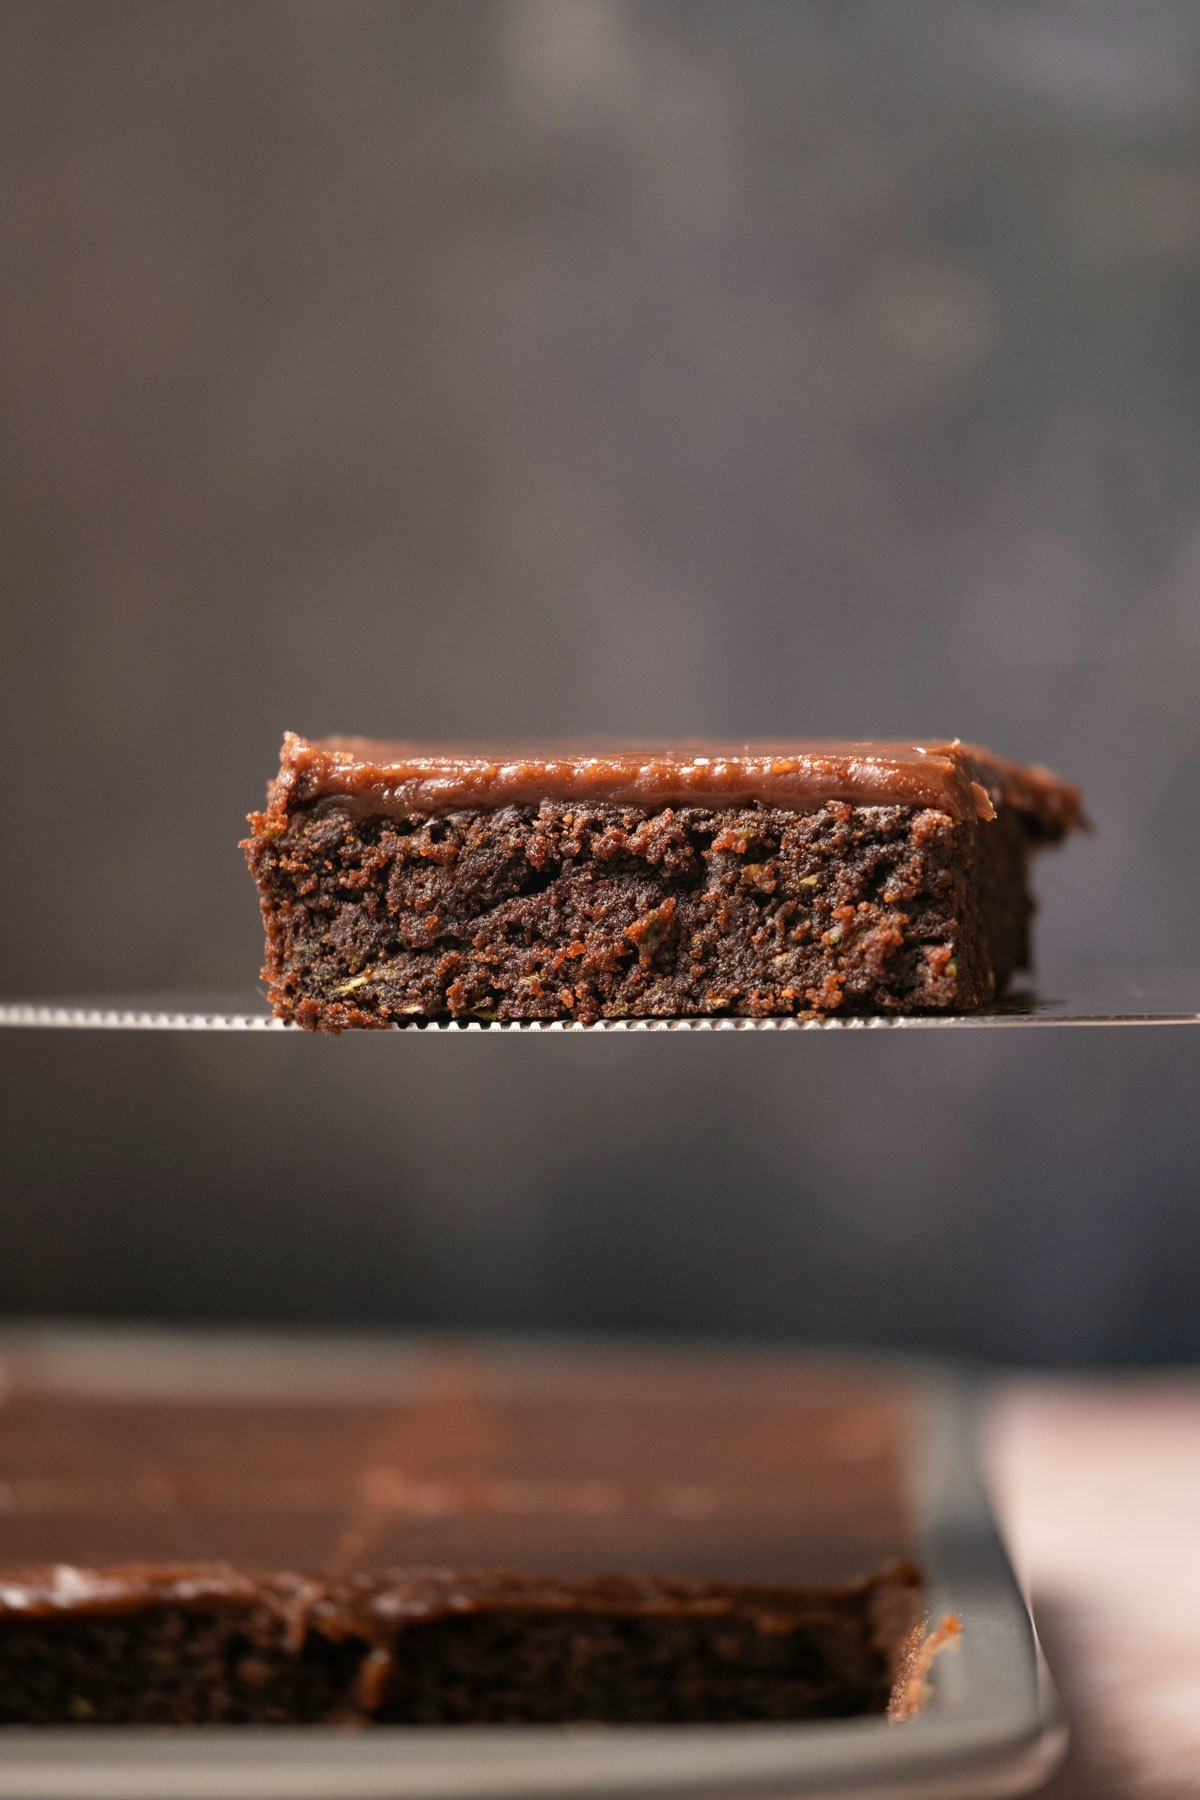 Brownie on a cake lifter.